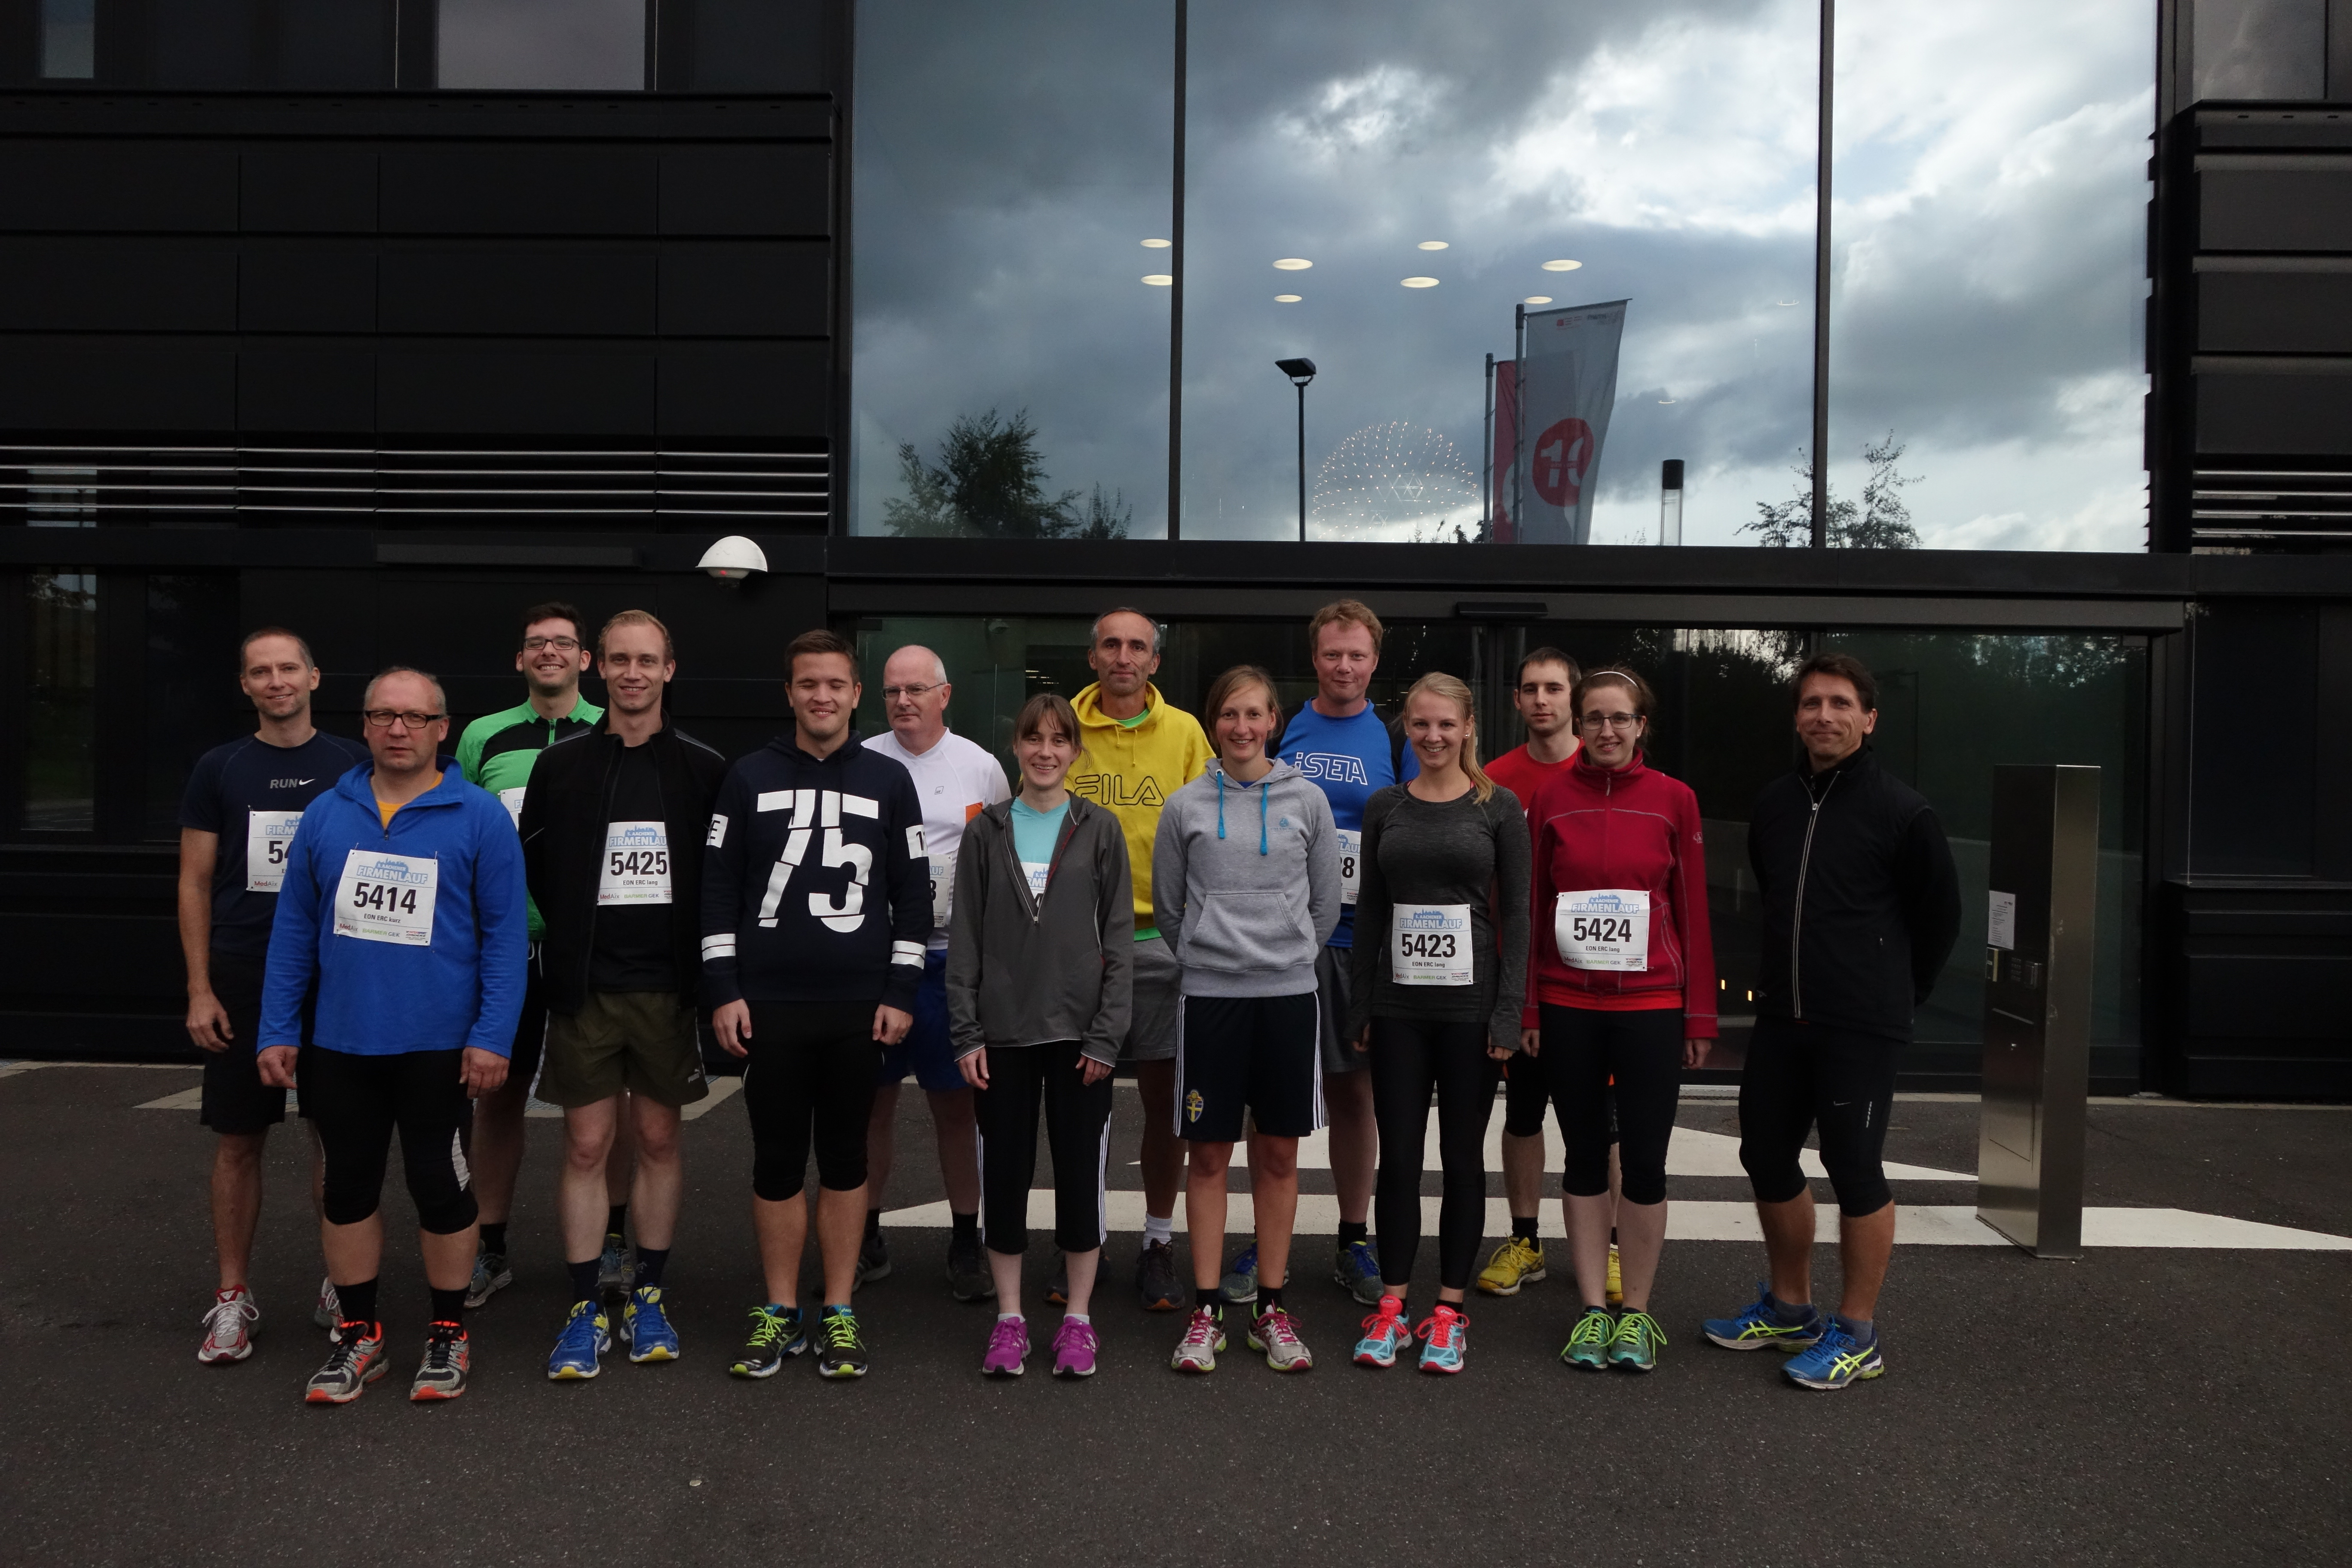 Participants of the 5th Corporate Run in Aachen